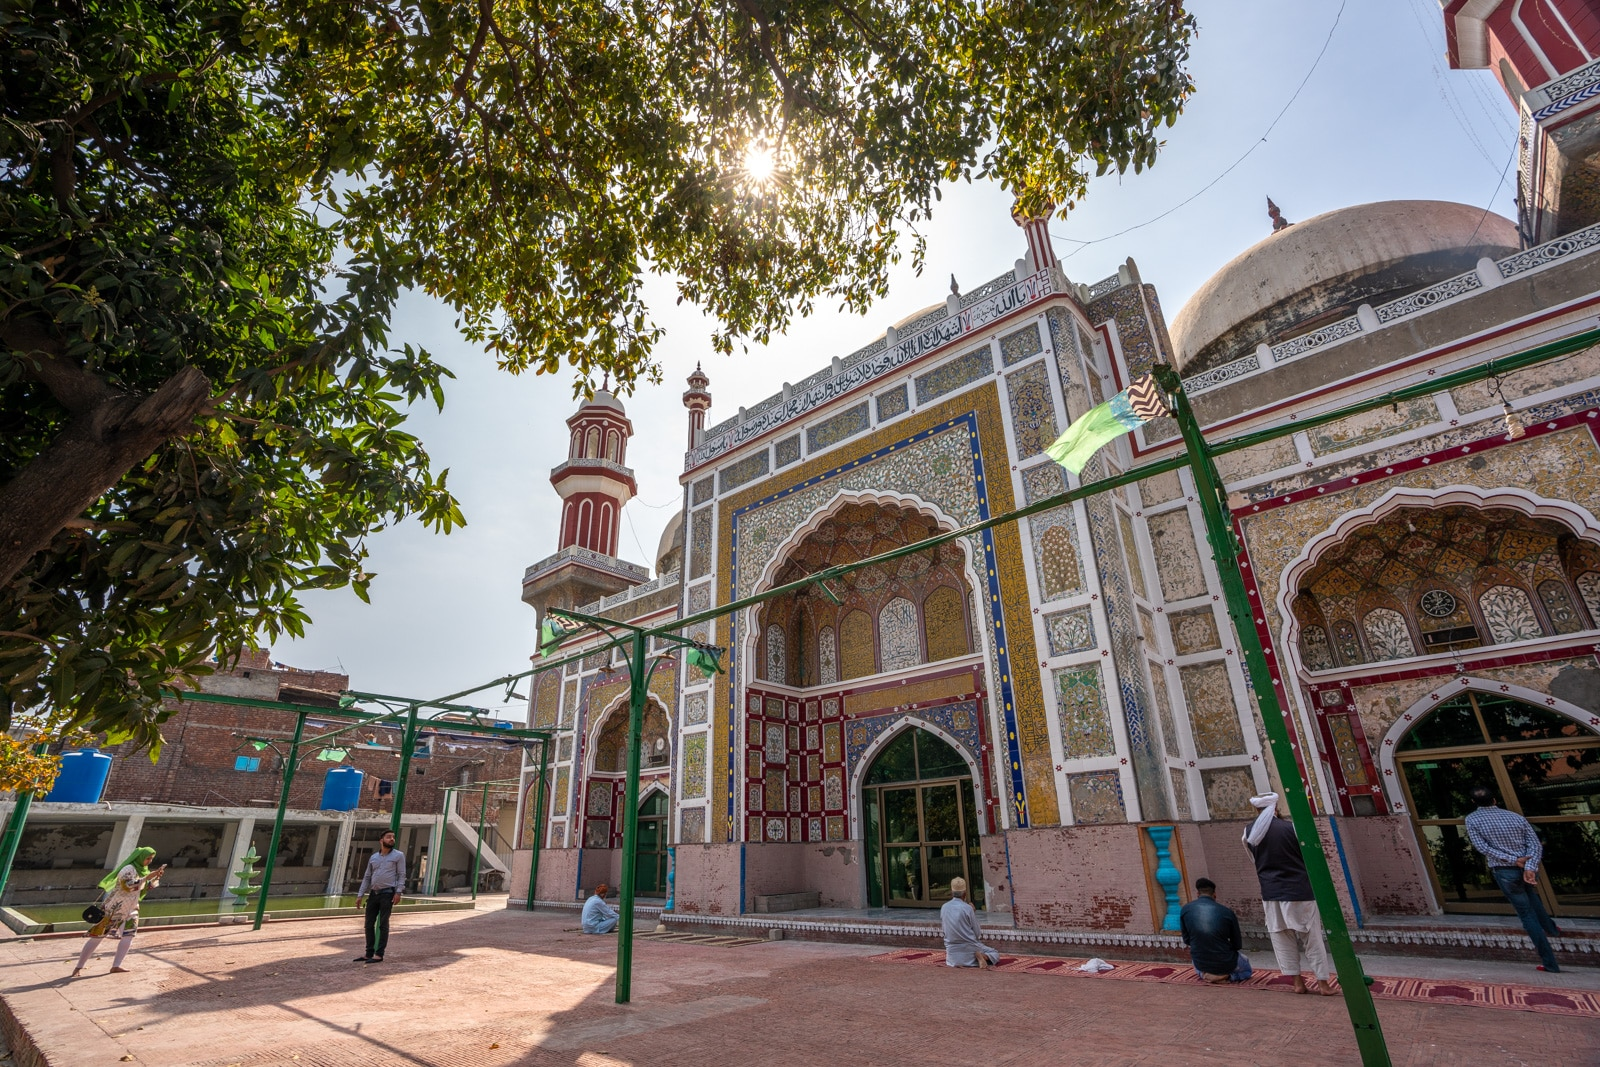 Interesting things to do in Lahore, Pakistan - Sunlight coming through trees at the Dai Anga Mosque in Lahore, Pakistan